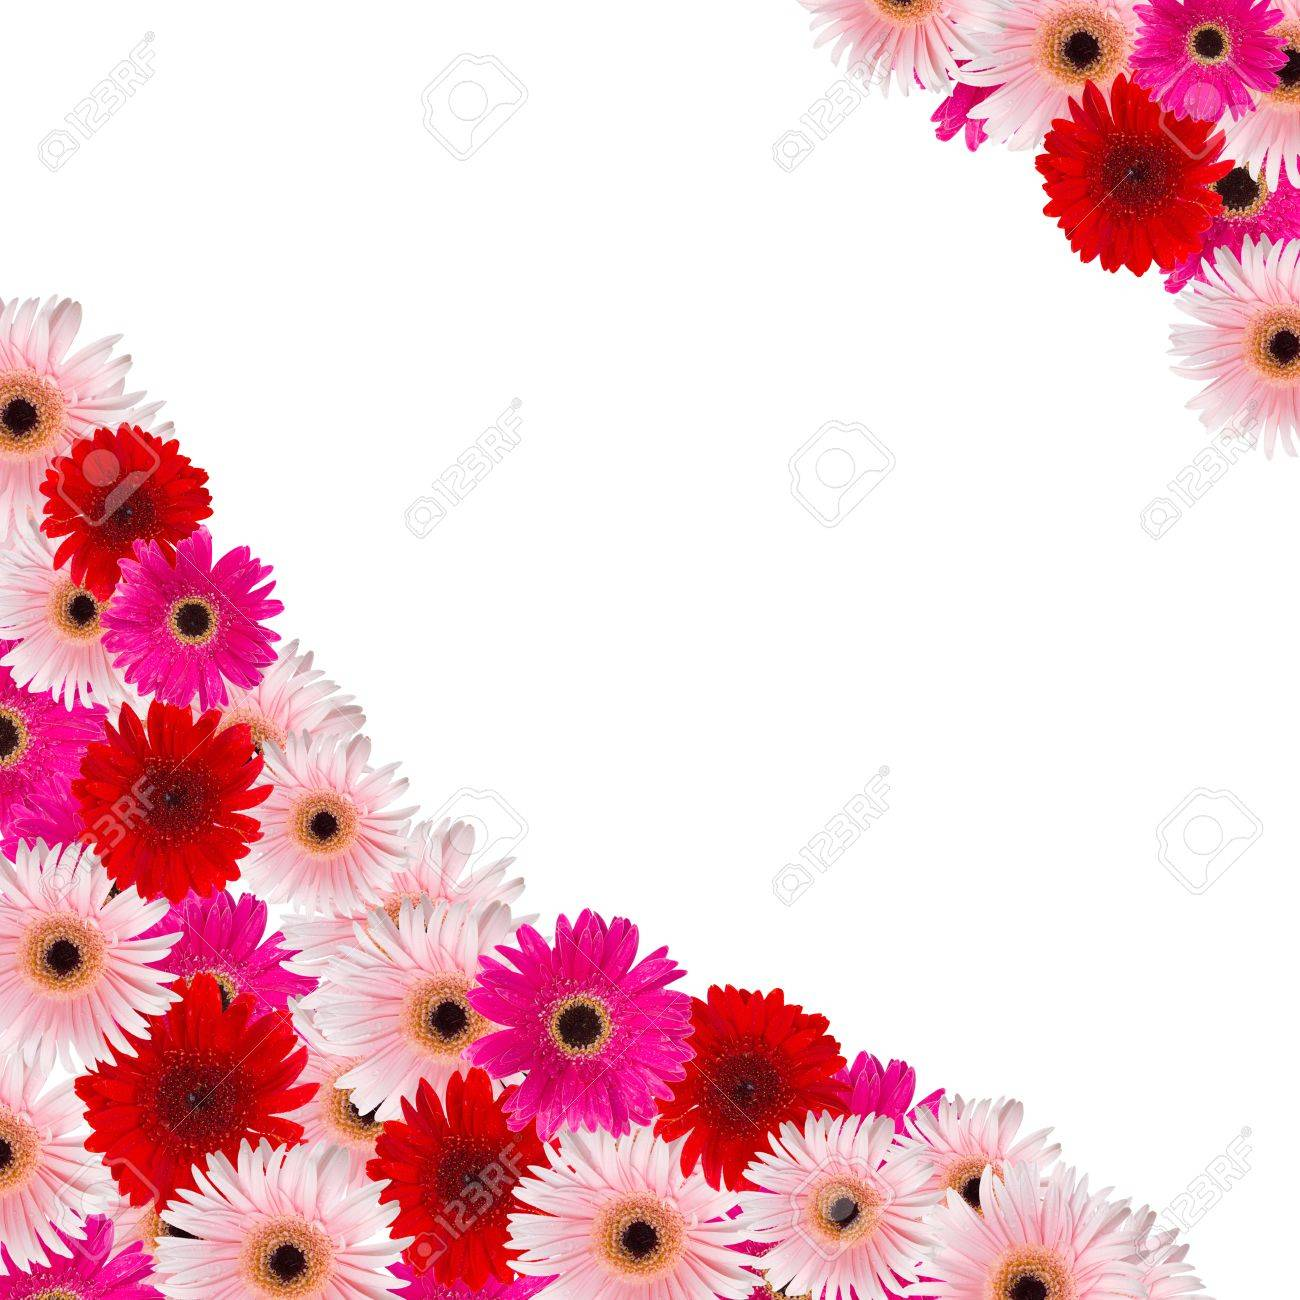 Pink and red herbera flowers border isolated on white background pink and red herbera flowers border isolated on white background stock photo 21179160 mightylinksfo Choice Image